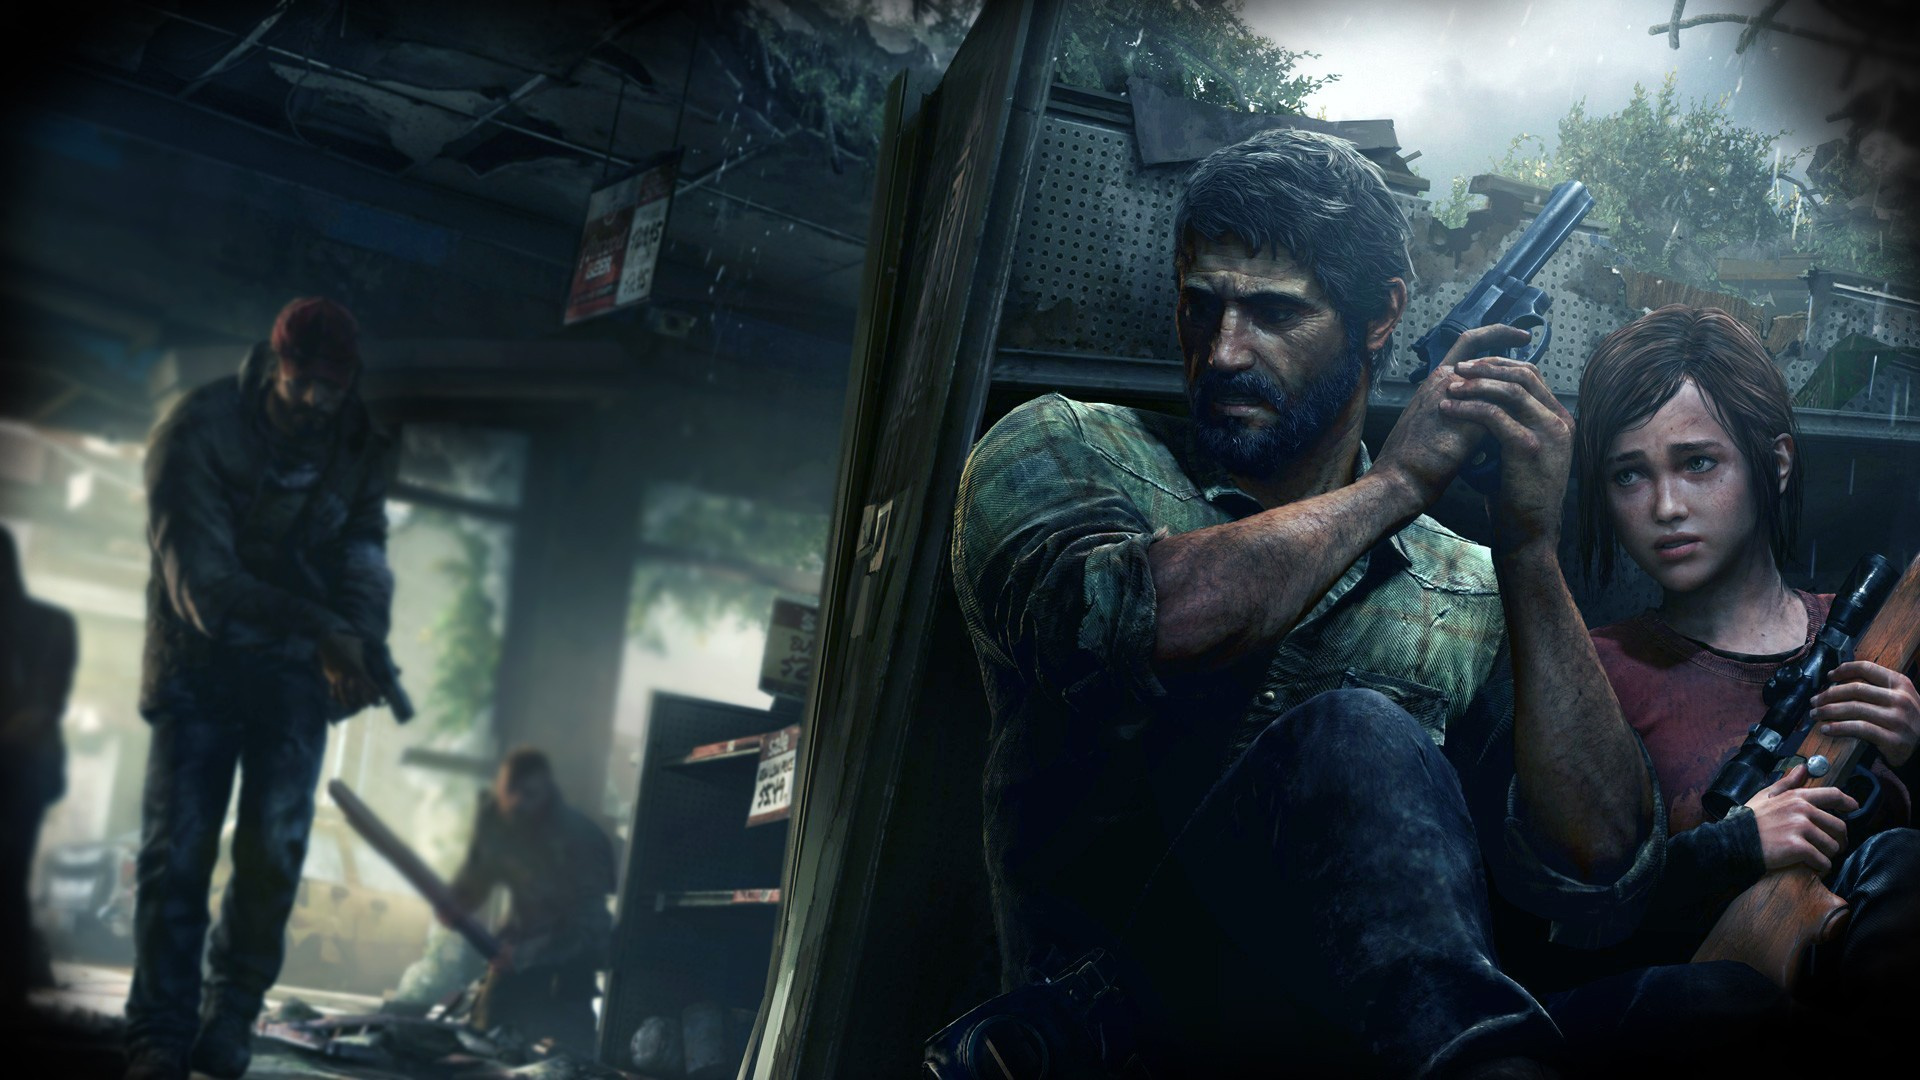 PlayStation Fans Reckon a Multiplayer Beta for The Last of Us 2 Is on Its Way